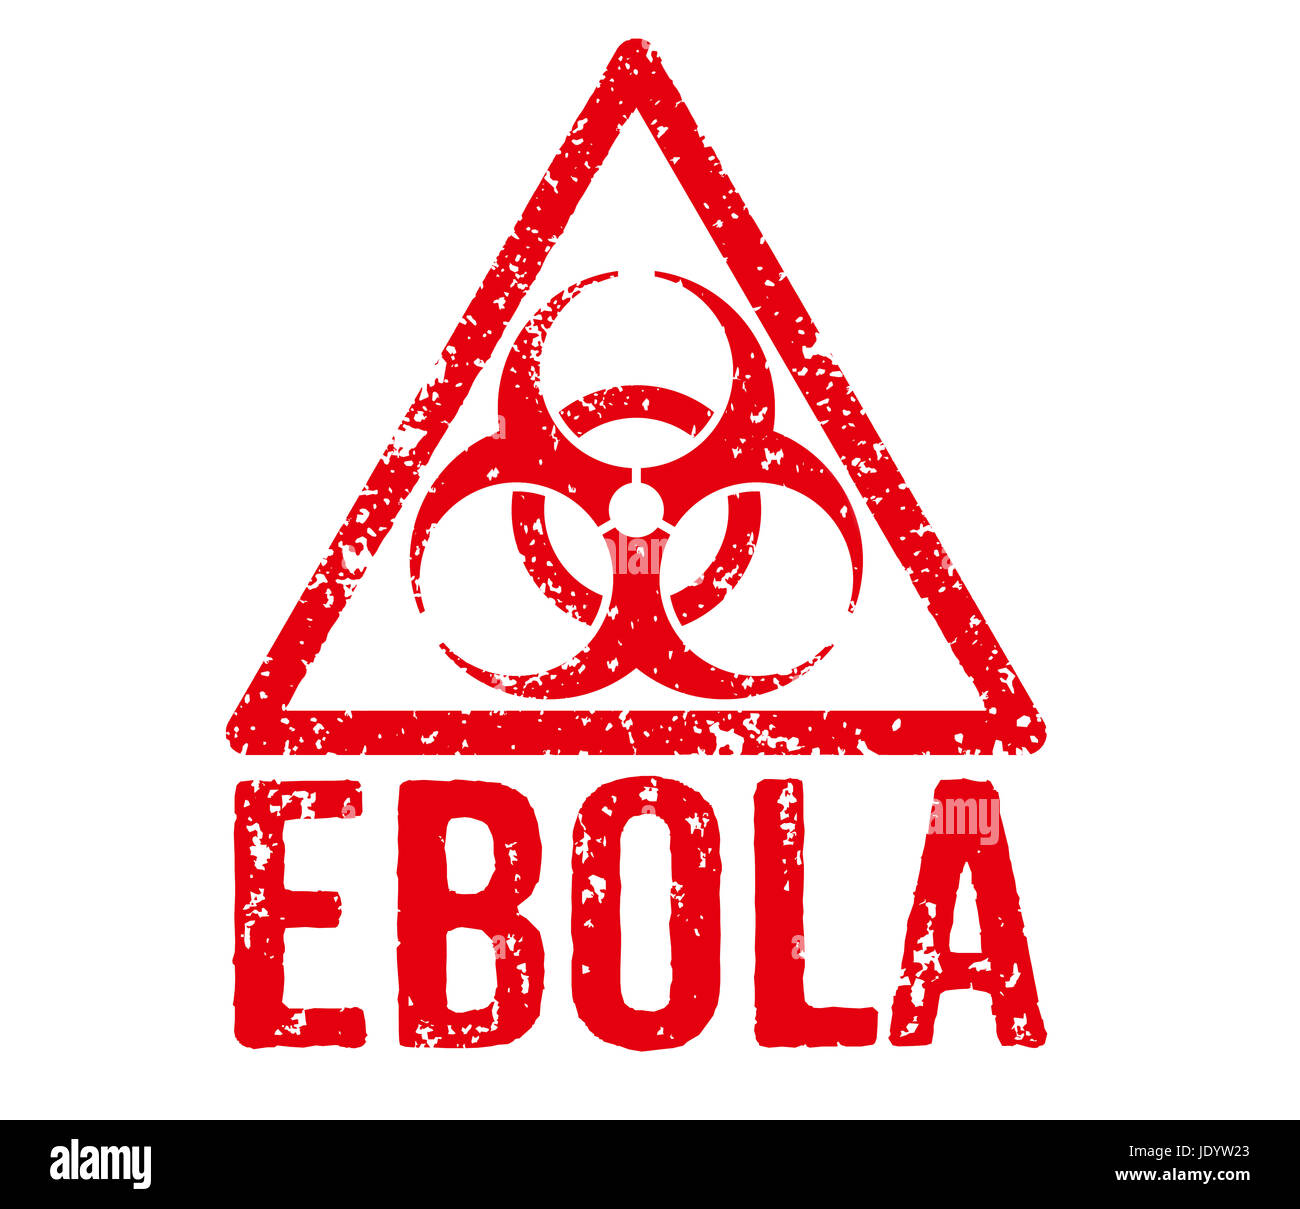 Roter Stempel - Ebola Stock Photo